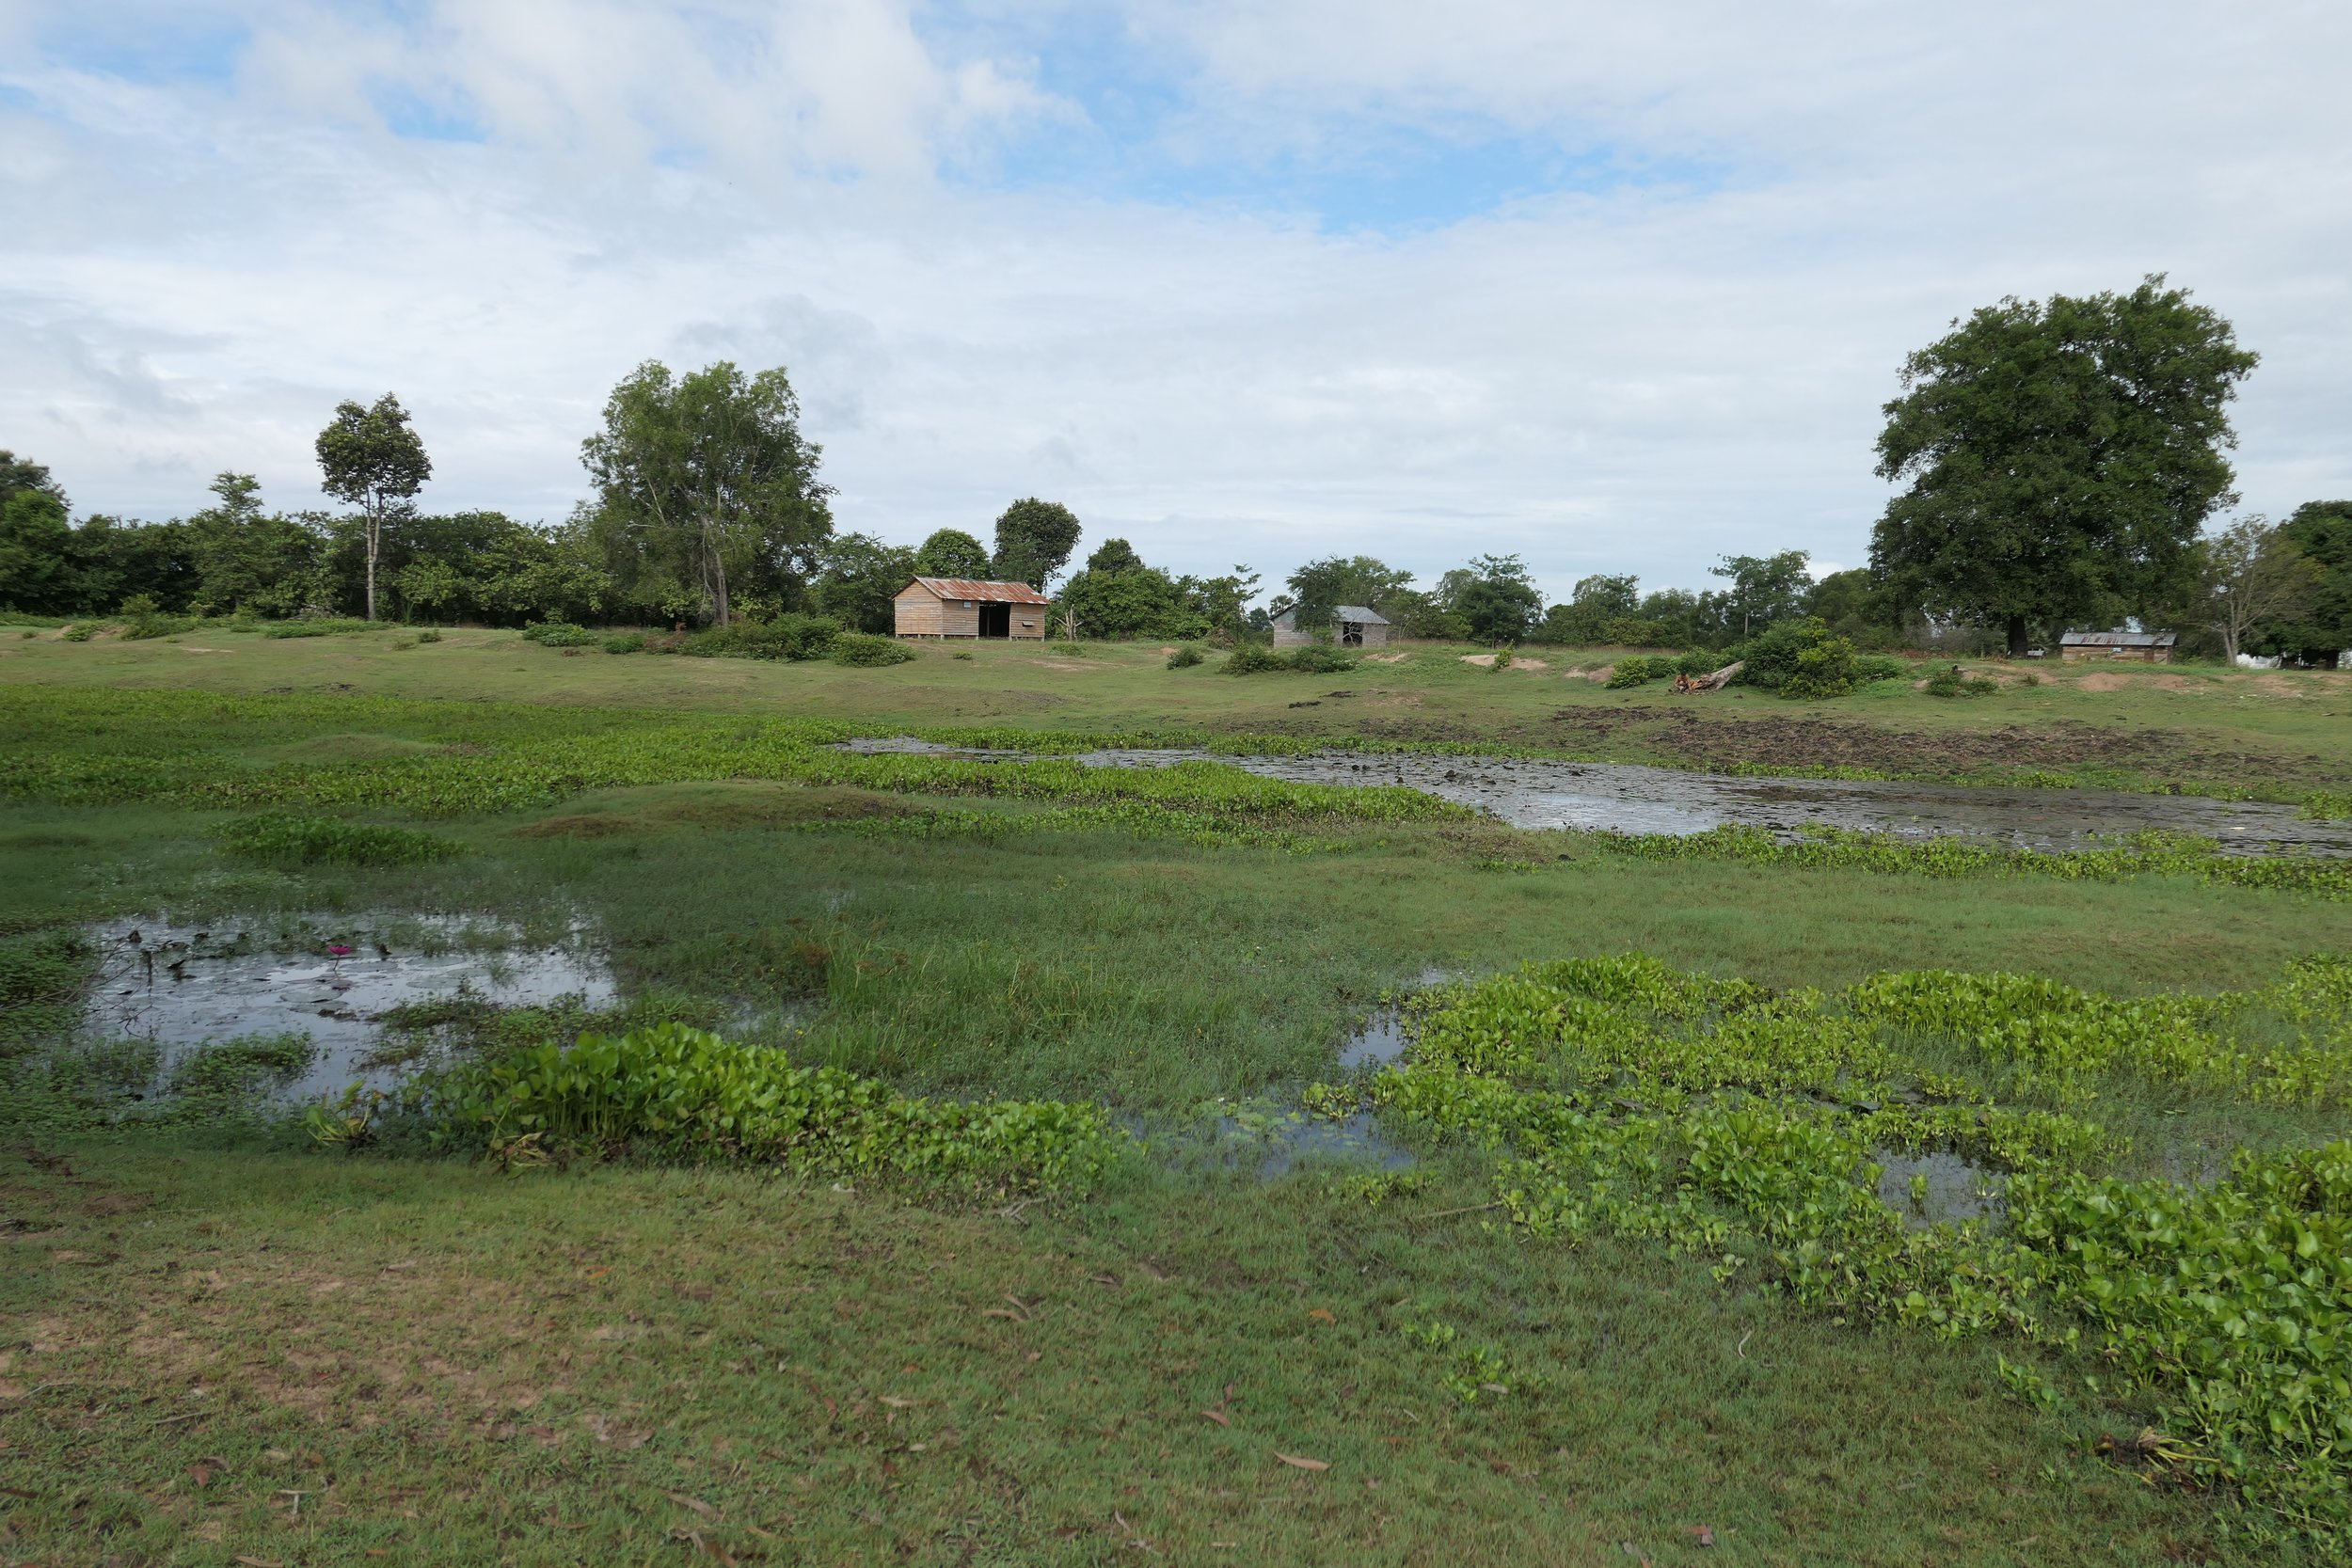 Plot of land neighboring the property on which the school will be built. Since this area used to be a river, we aim to clean and revitalize the premises with the help of the Rolous villagers, so that the nature can return to its original state in the long run.